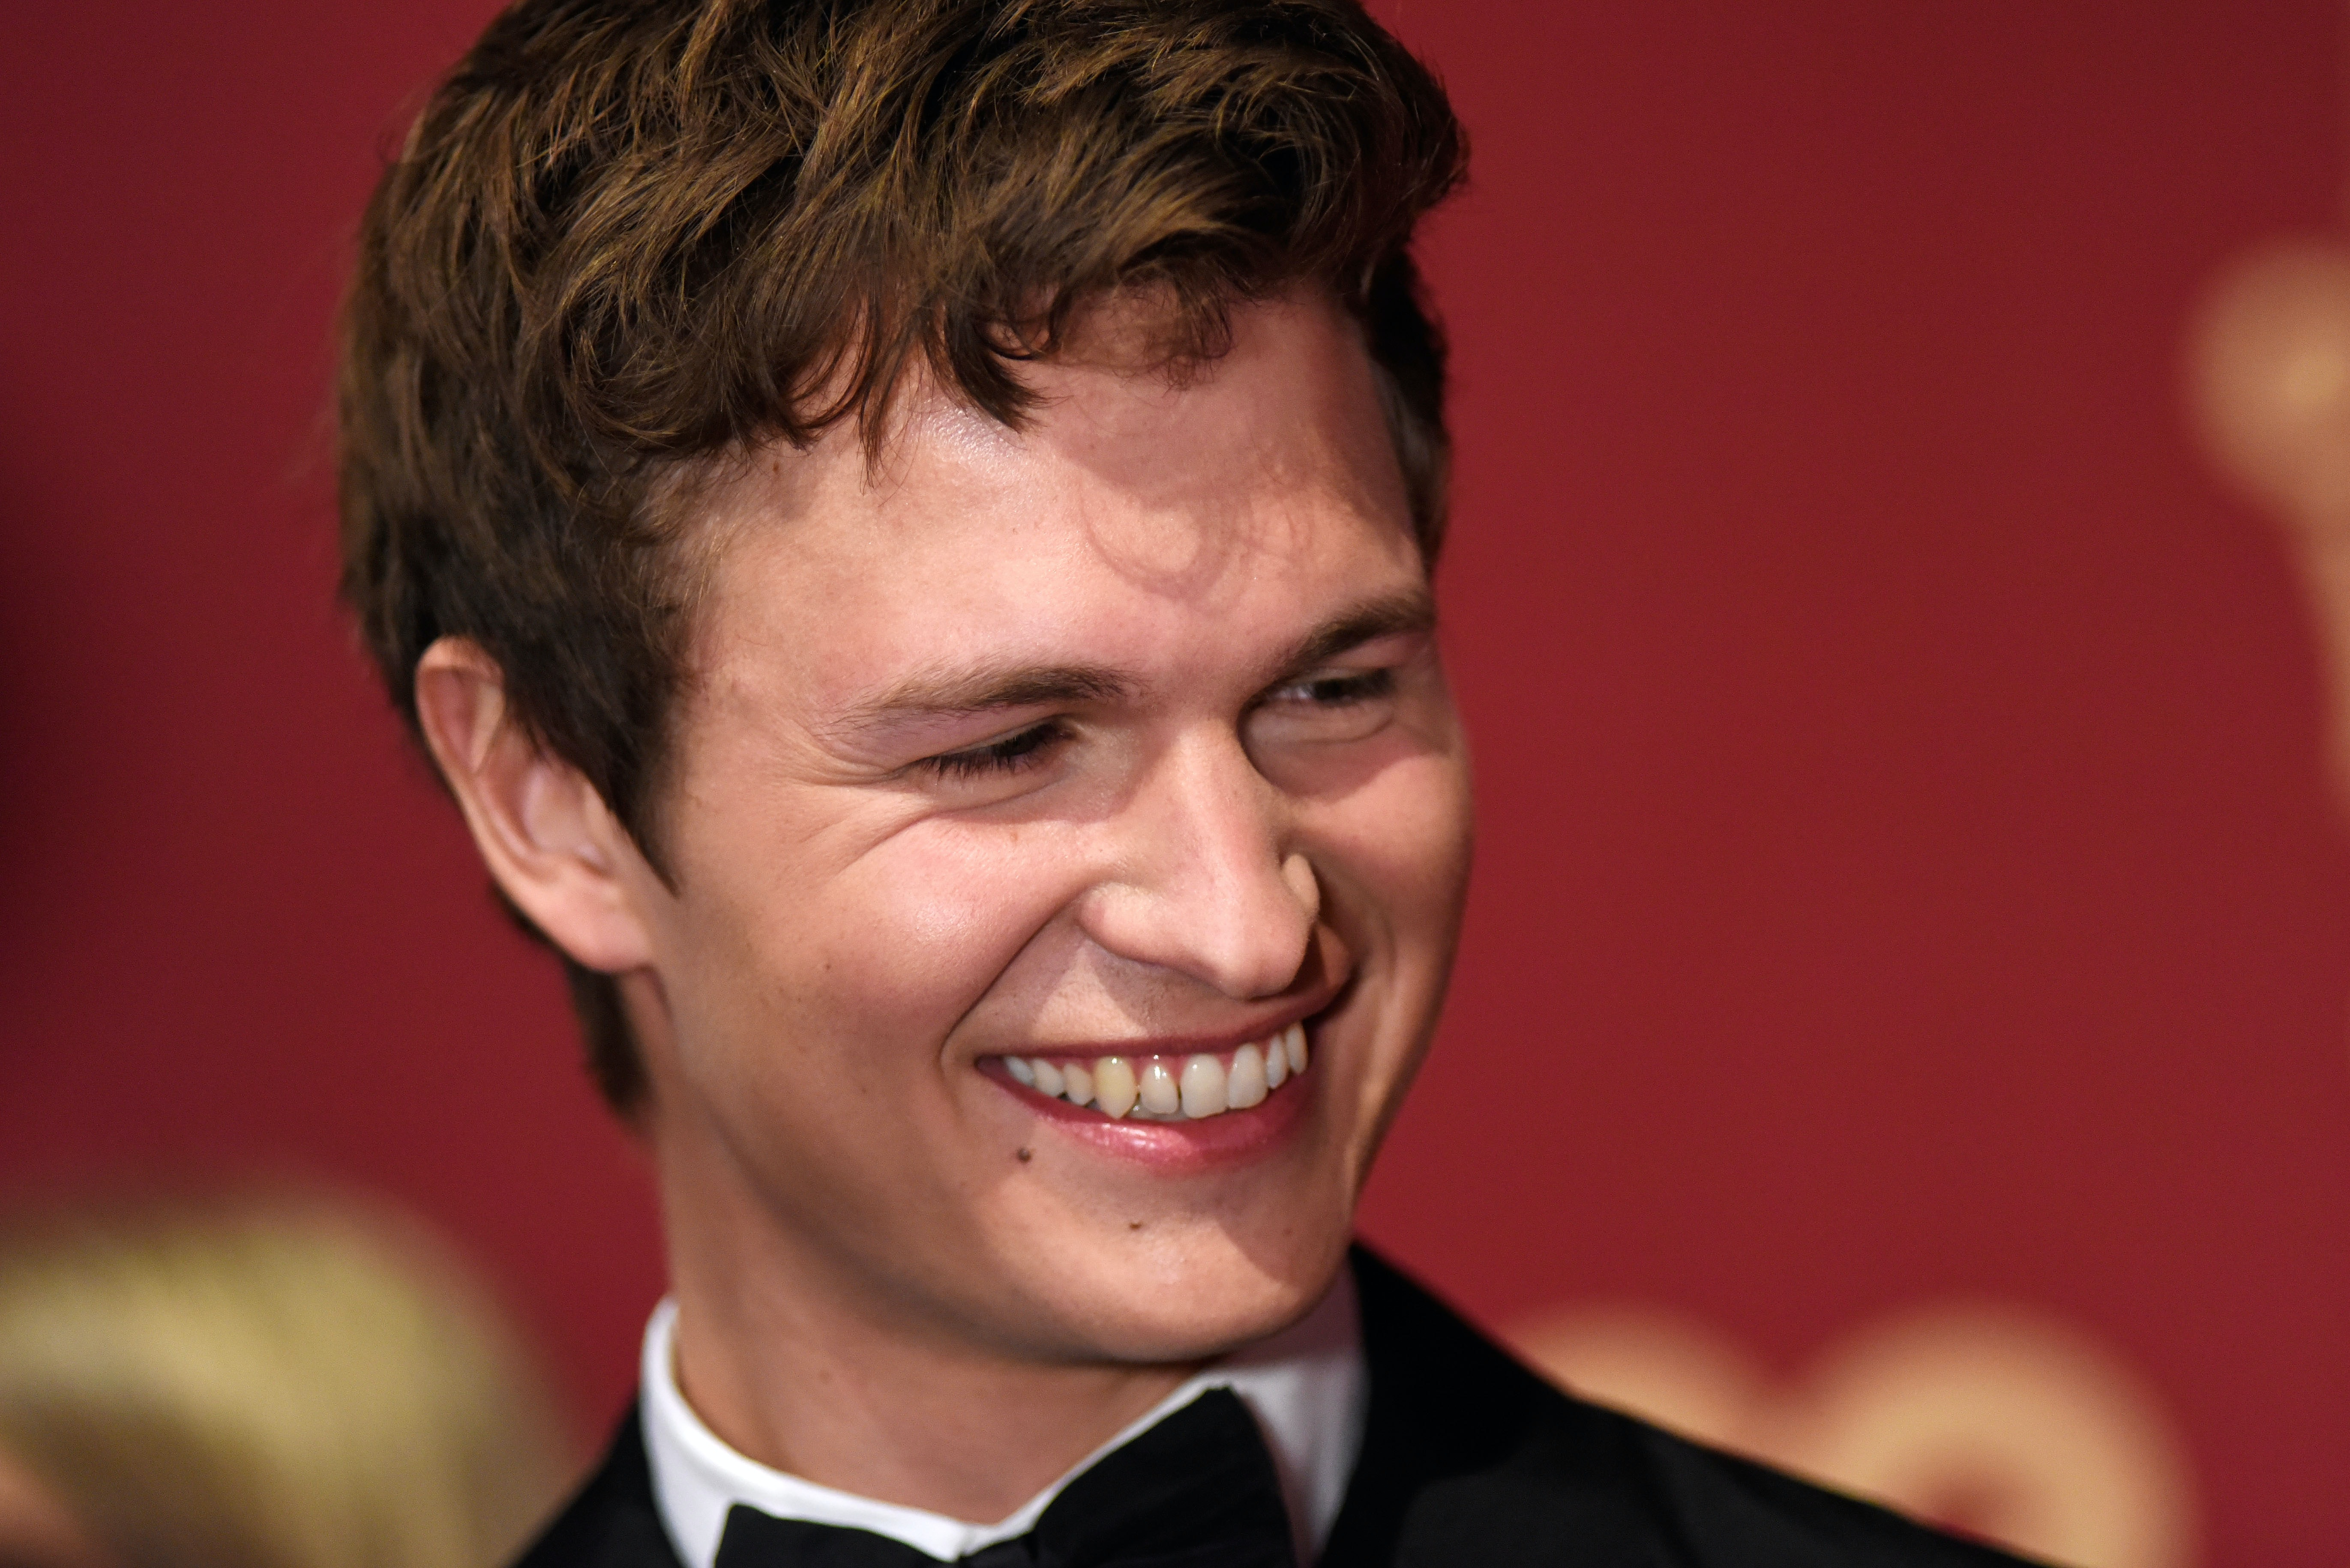 Who is ansel elgort currently hookup